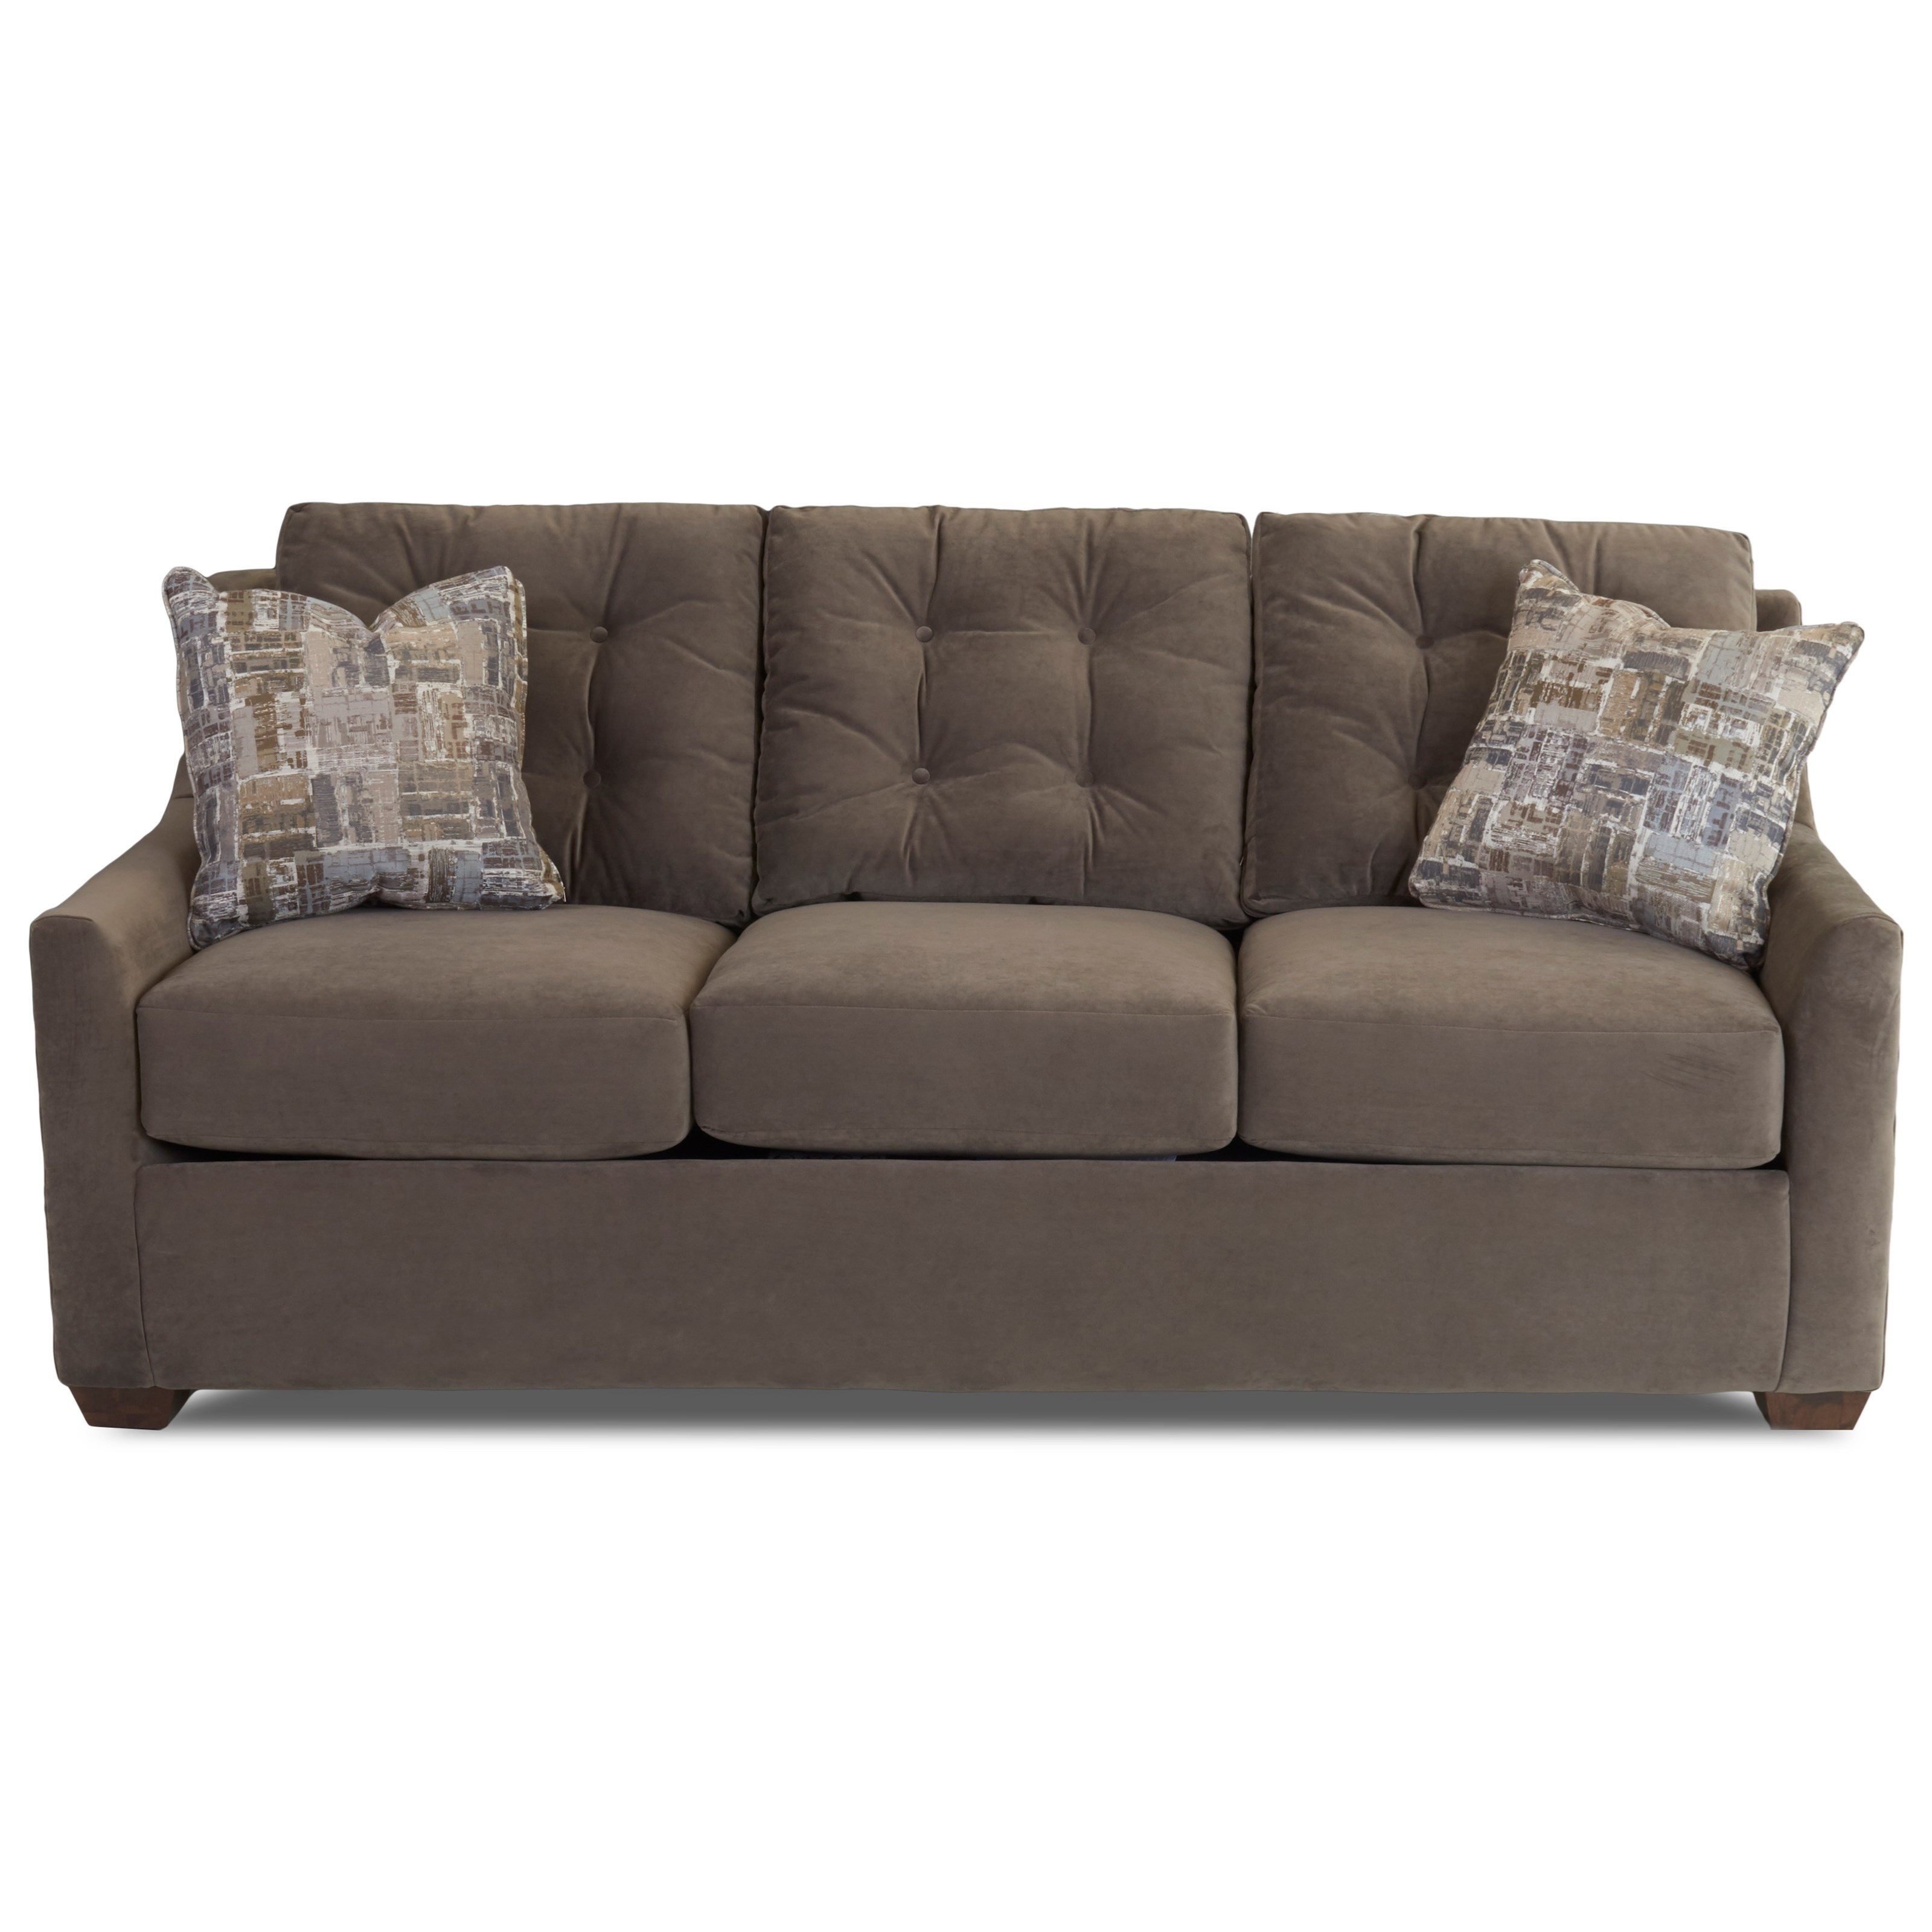 Grayton Sofa by Klaussner at Northeast Factory Direct